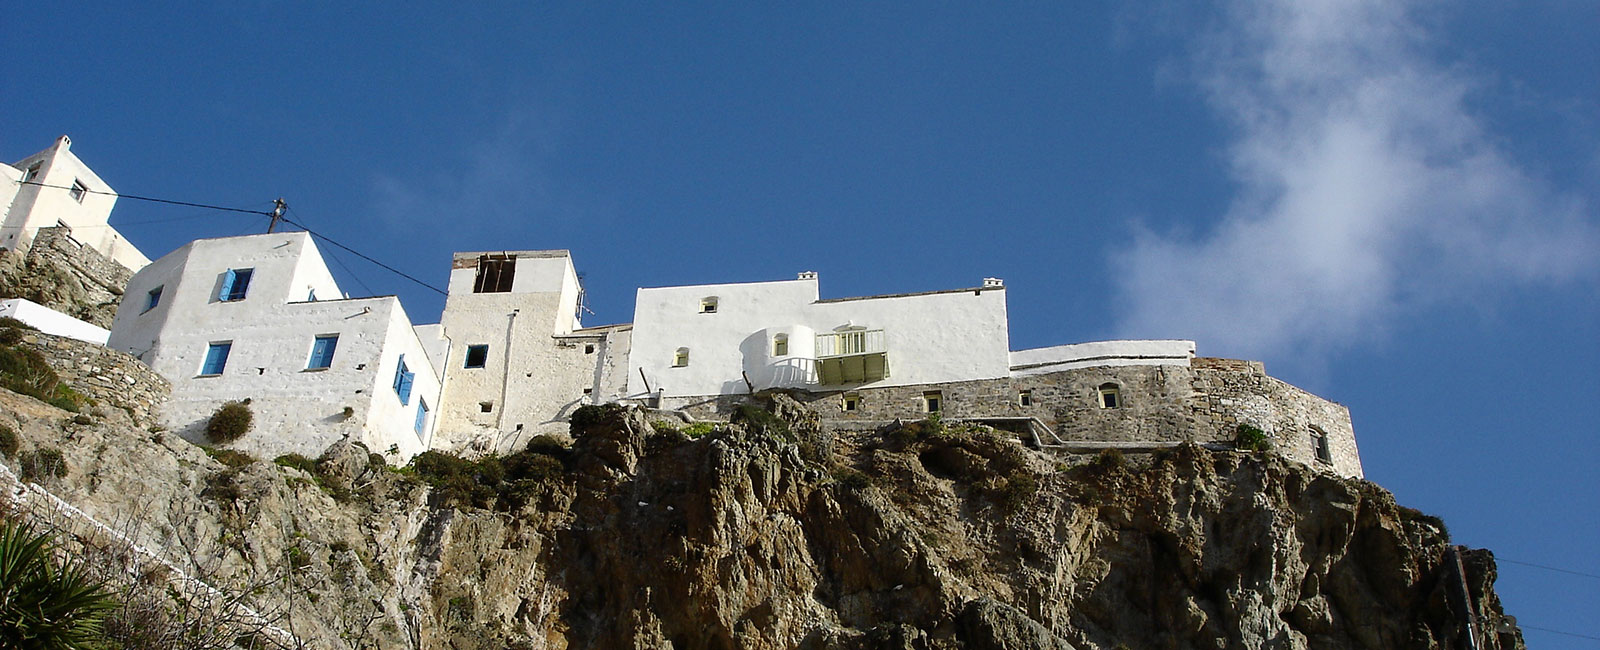 Accommodation by the sea in Serifos